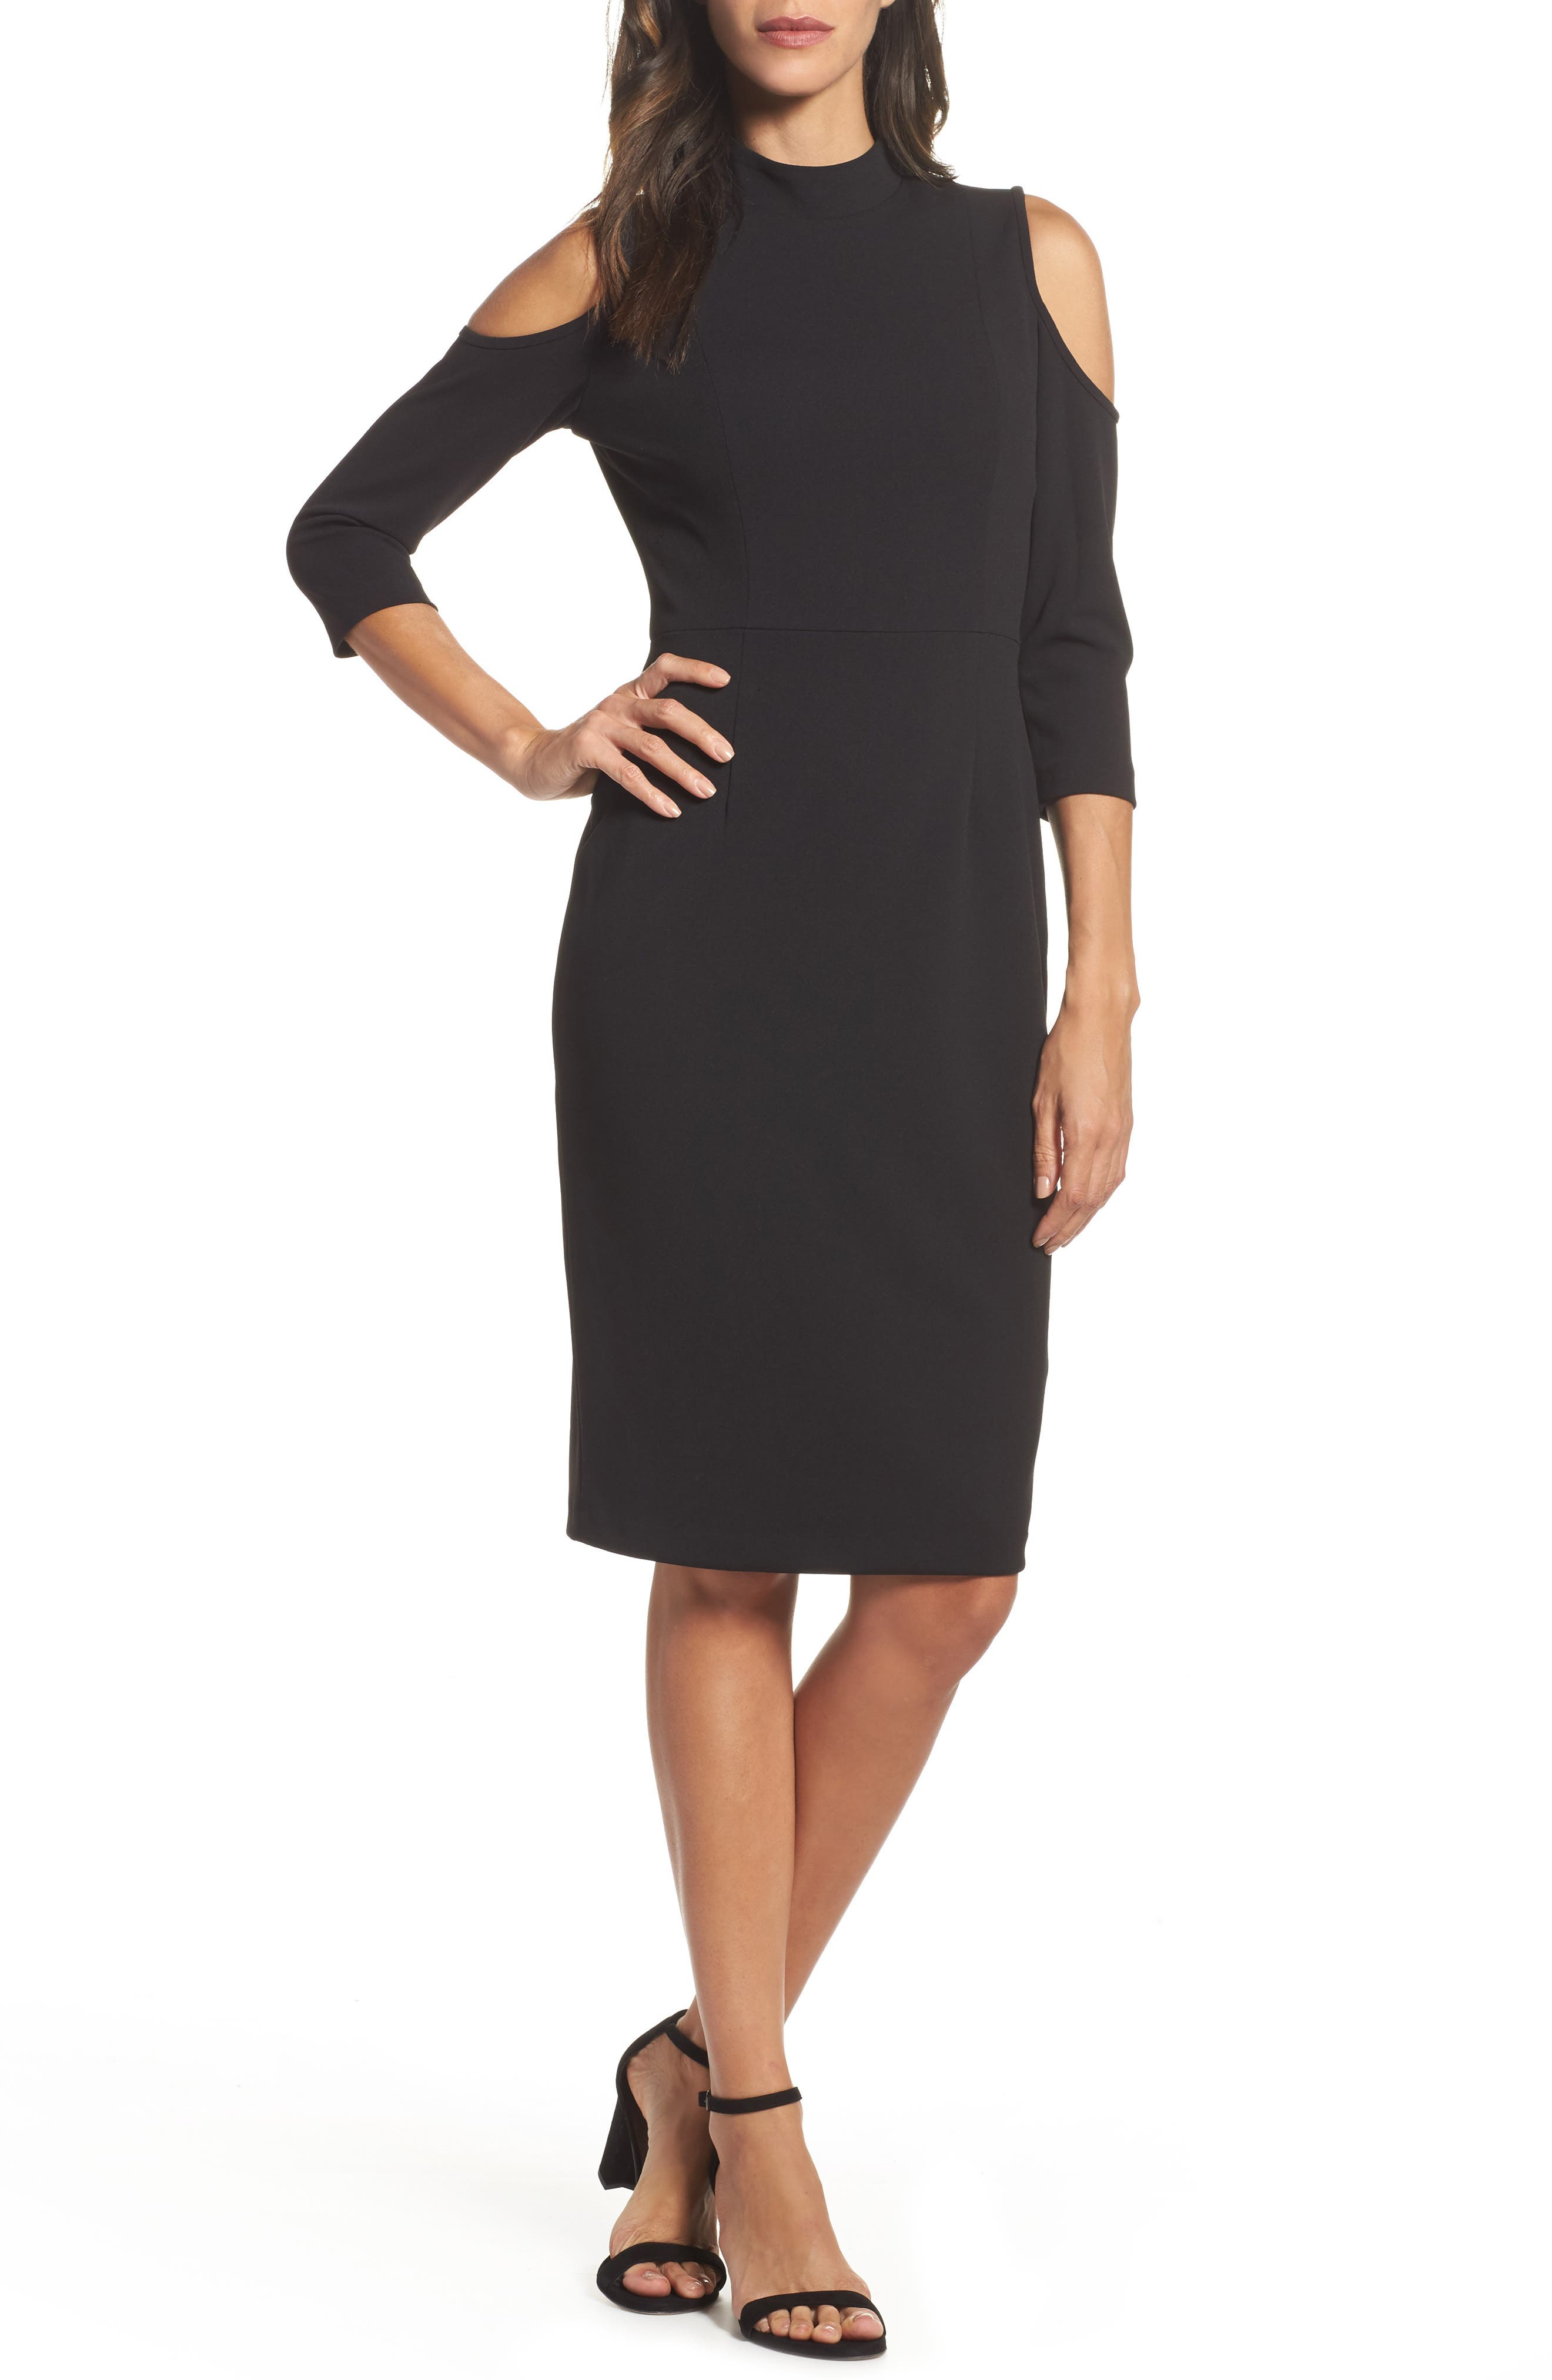 Alternate Image 1 Selected - Adrianna Papell Cold Shoulder Sheath Dress